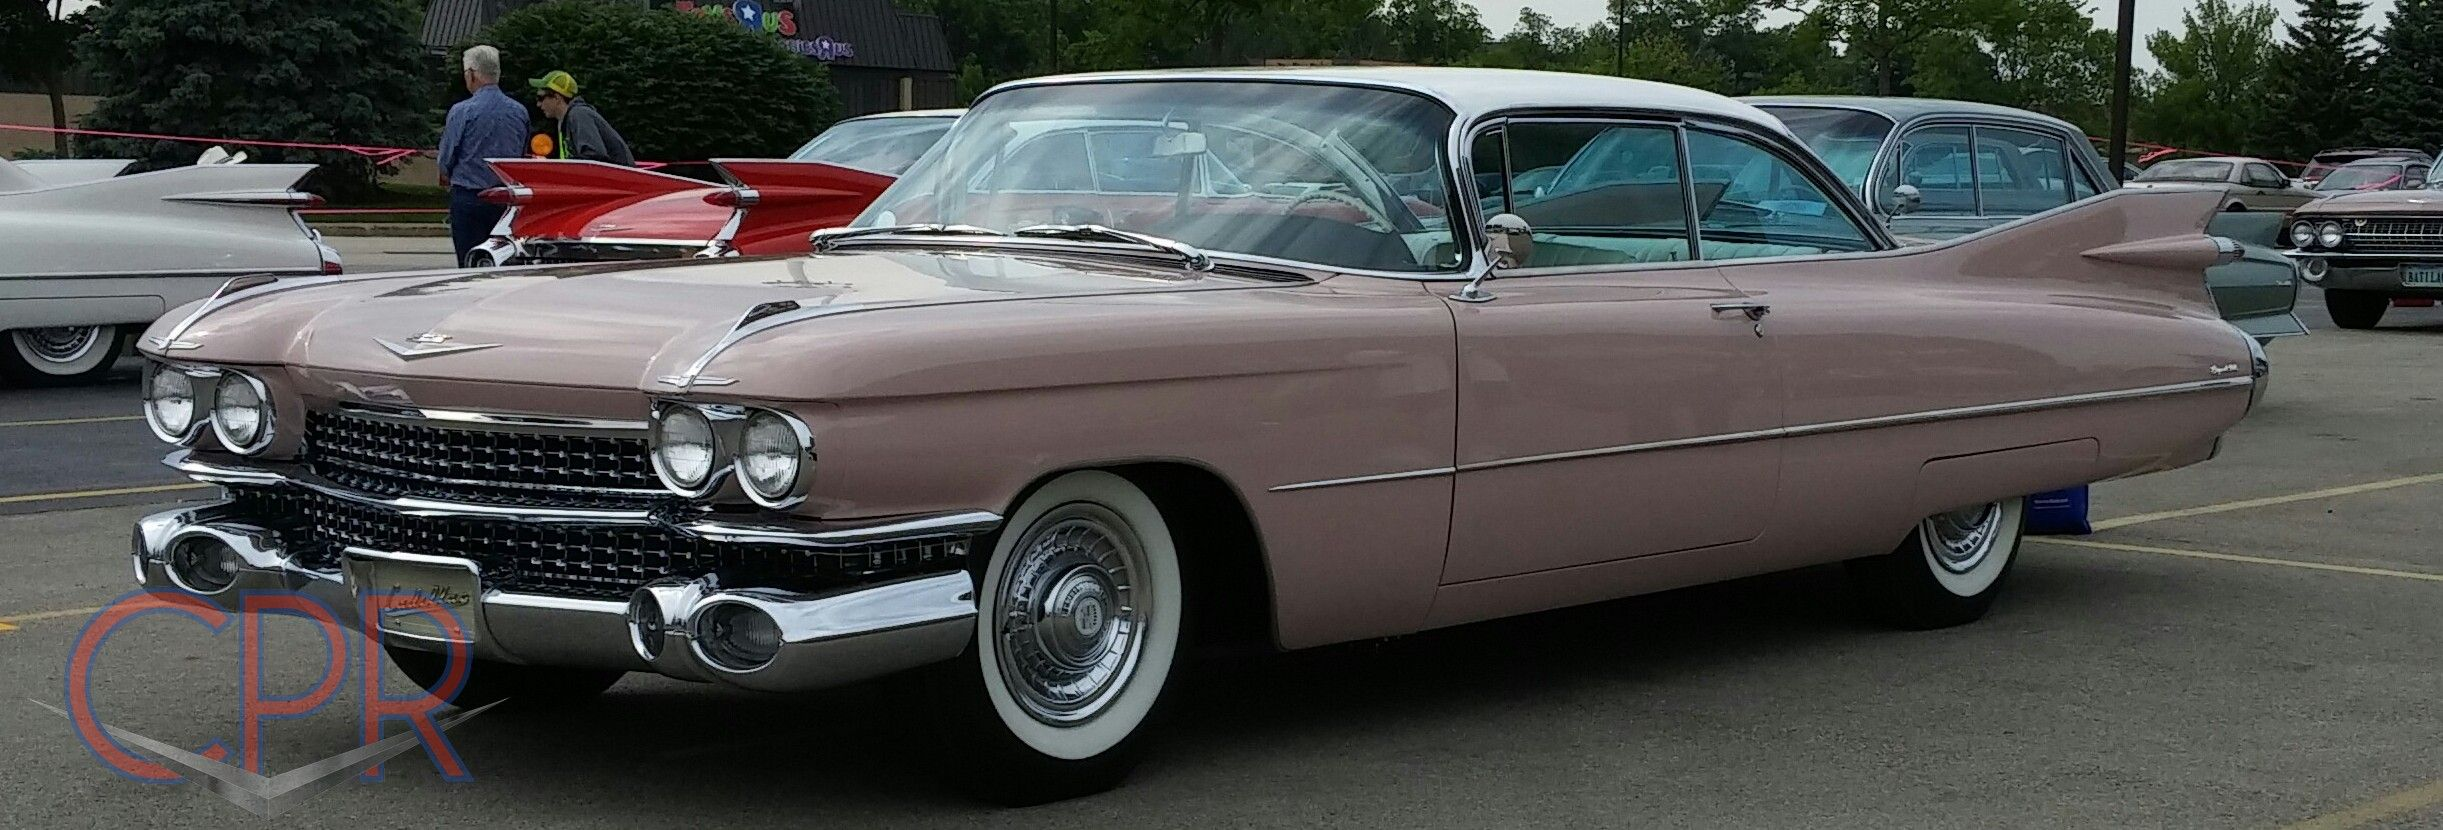 Very sweet 1959 Cadillac Coupe deVille at the 2015 Cadillac